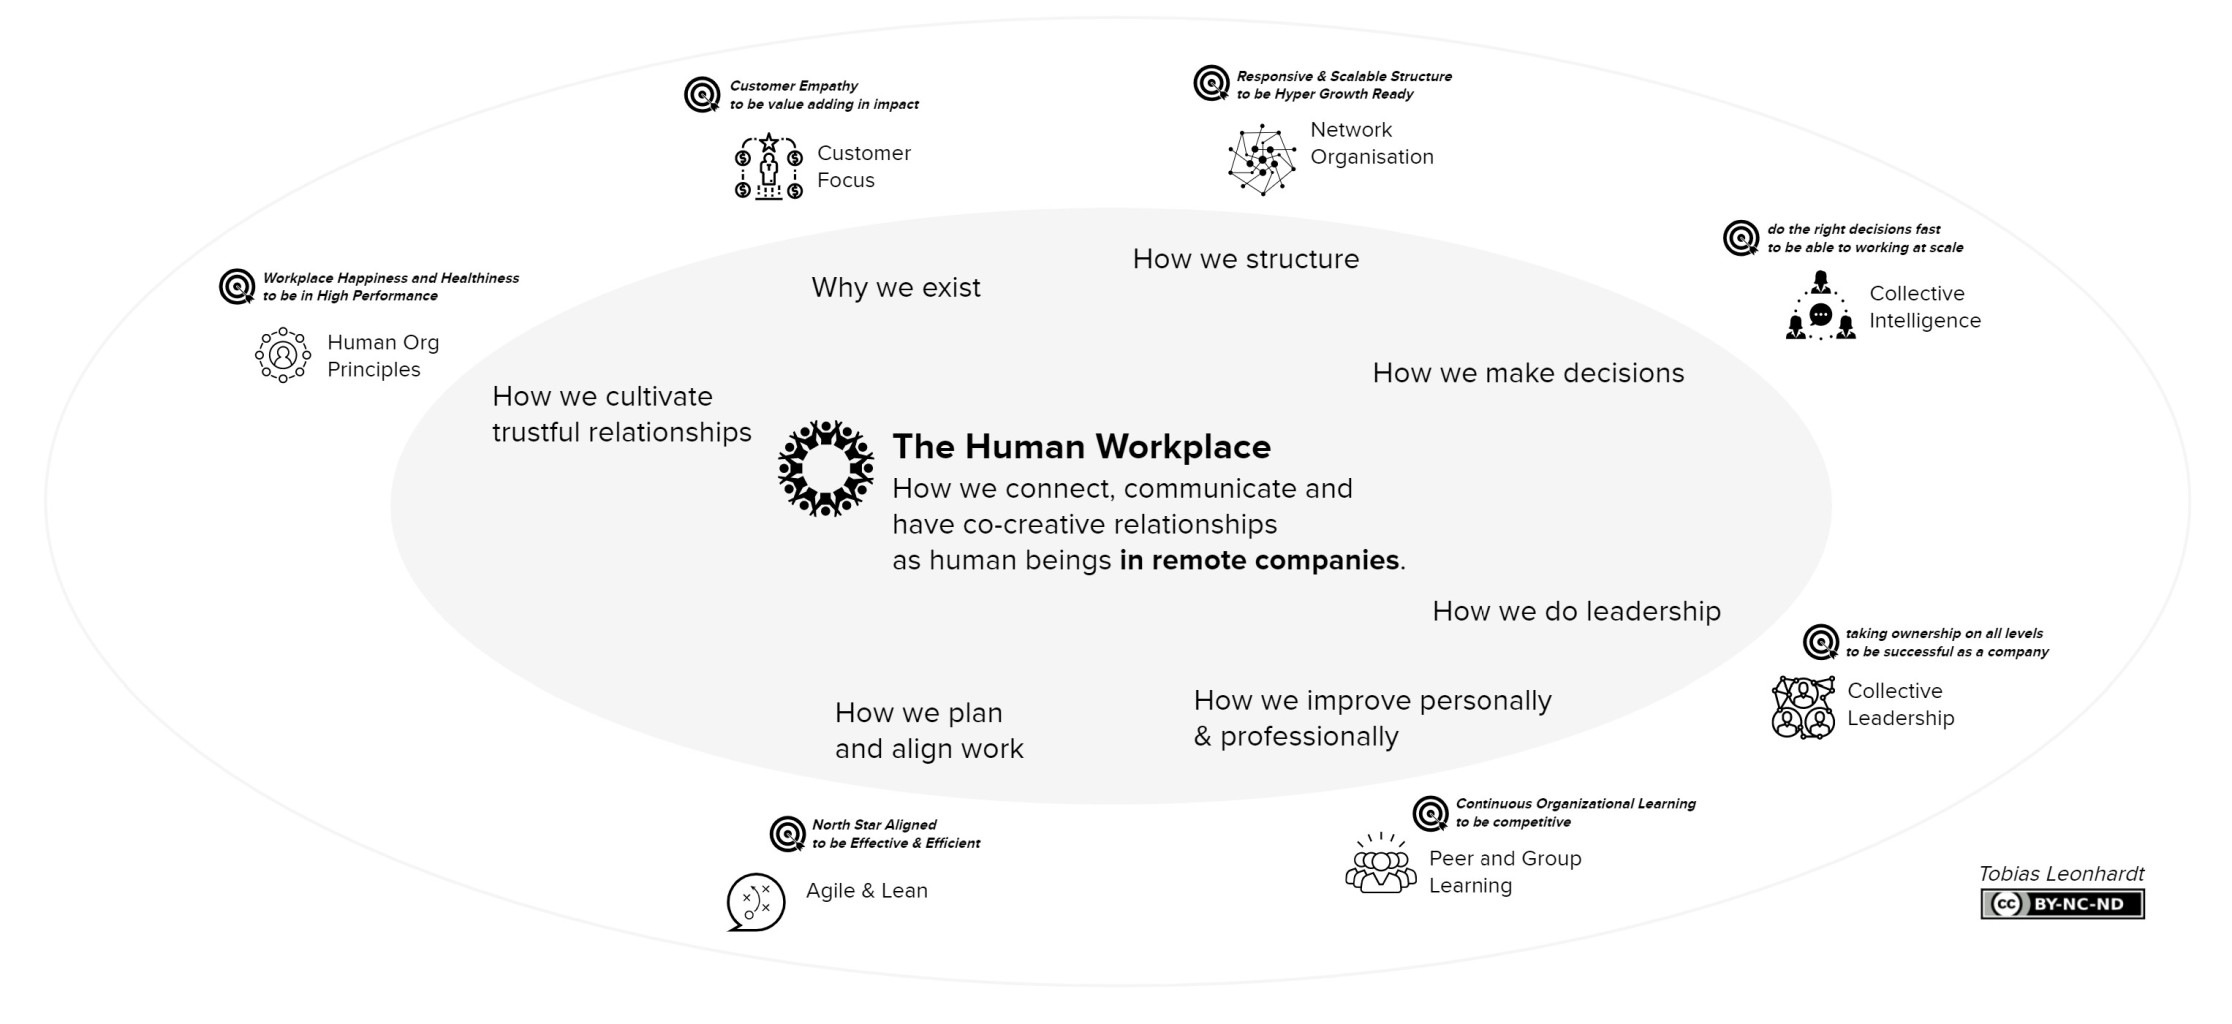 How to organize a remote company and build a human workplace for high performance and hyper-growth